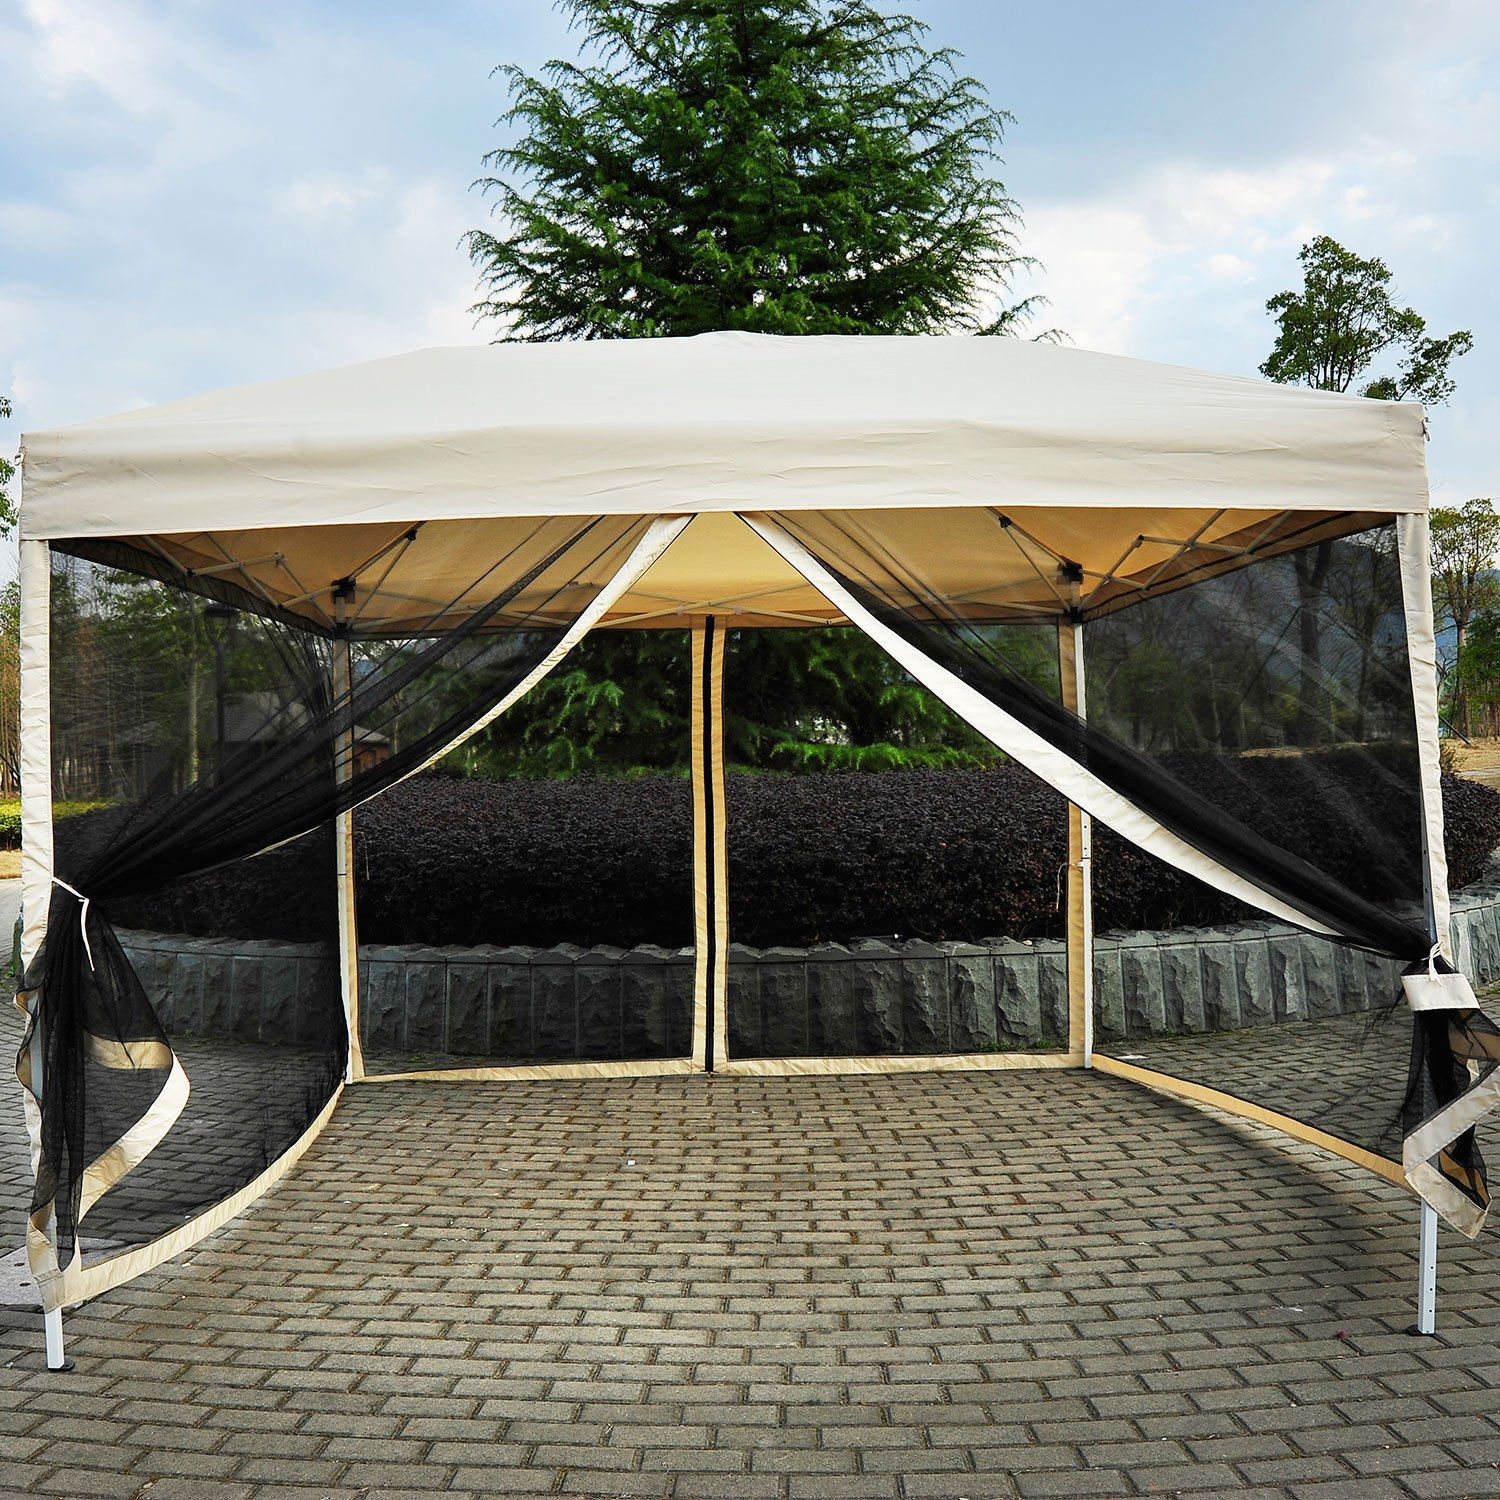 10' x 10' Pop Up Tent Mesh Screen Patio Shade tan by Tamsun